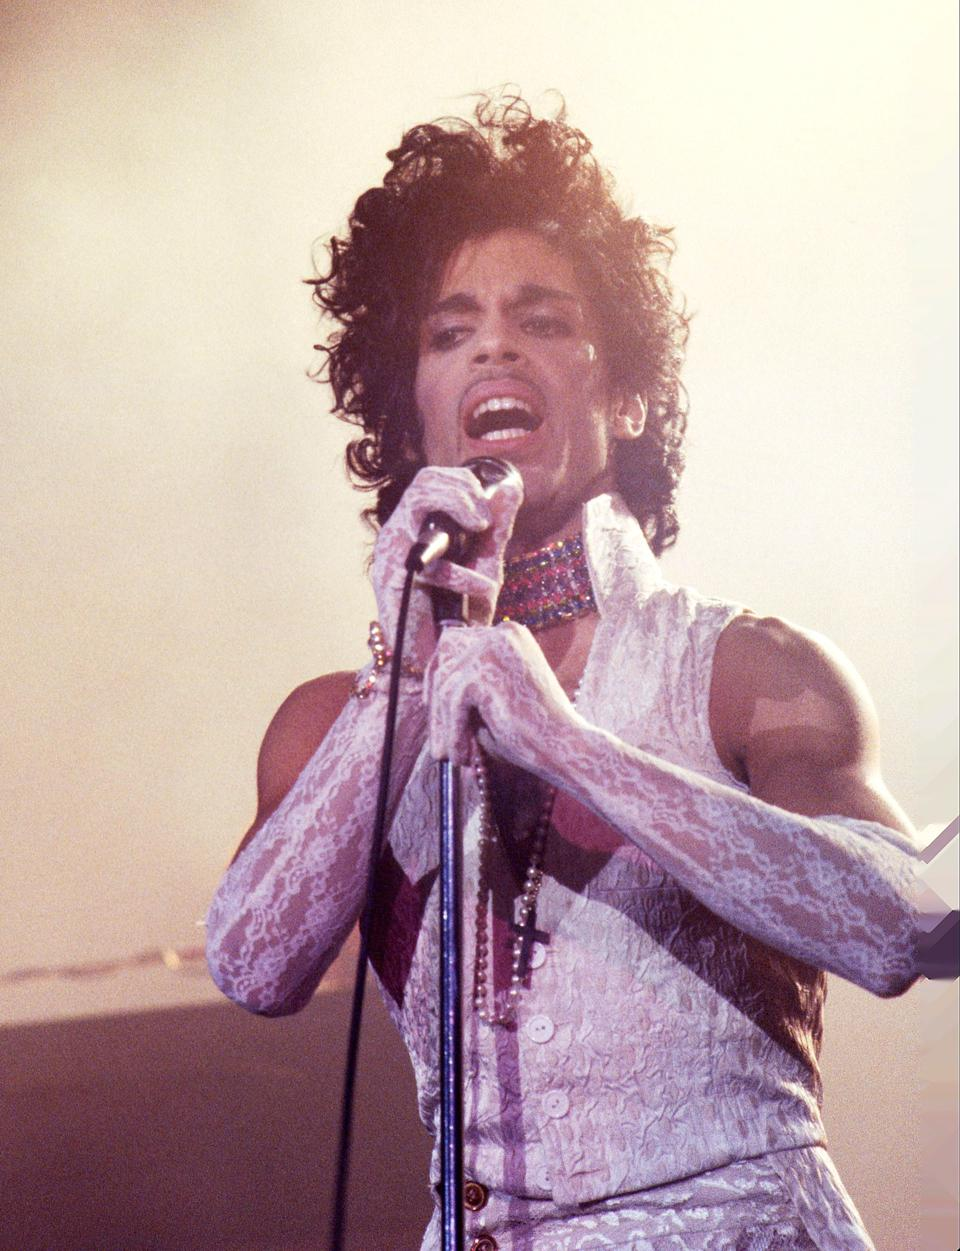 Prince File Photos By Kevin Mazur